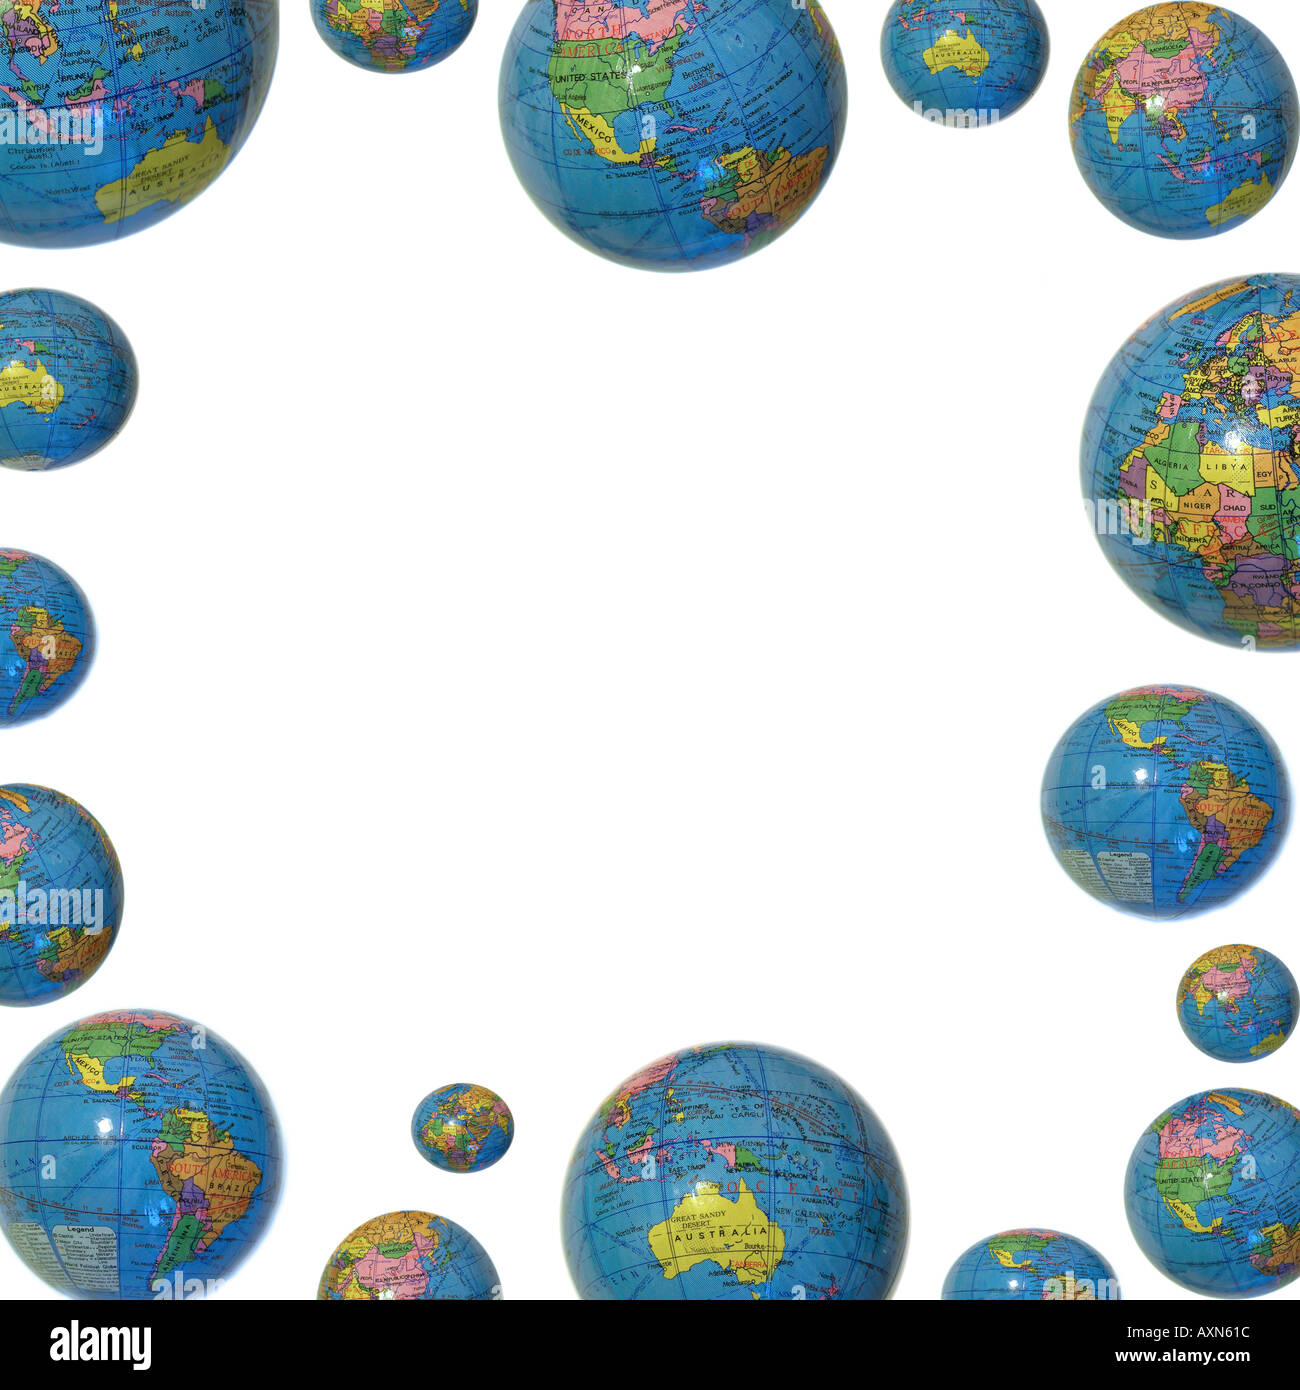 Globe Border Background Frame Stock Photo 3135003 Alamy